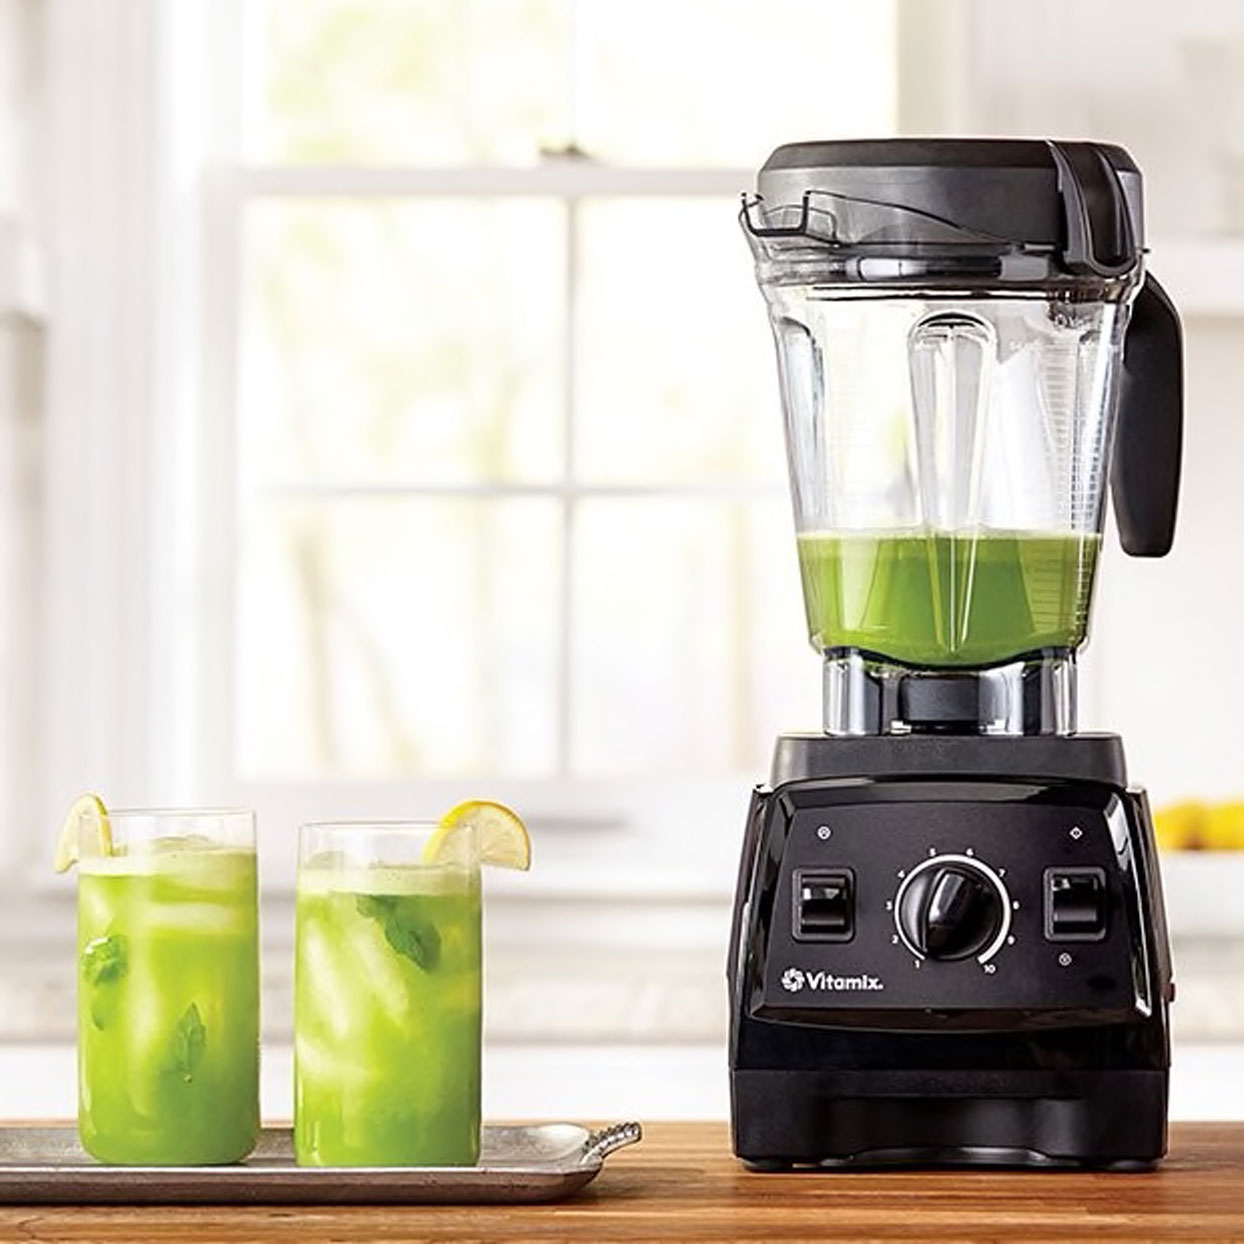 Vitamix blender and two cups